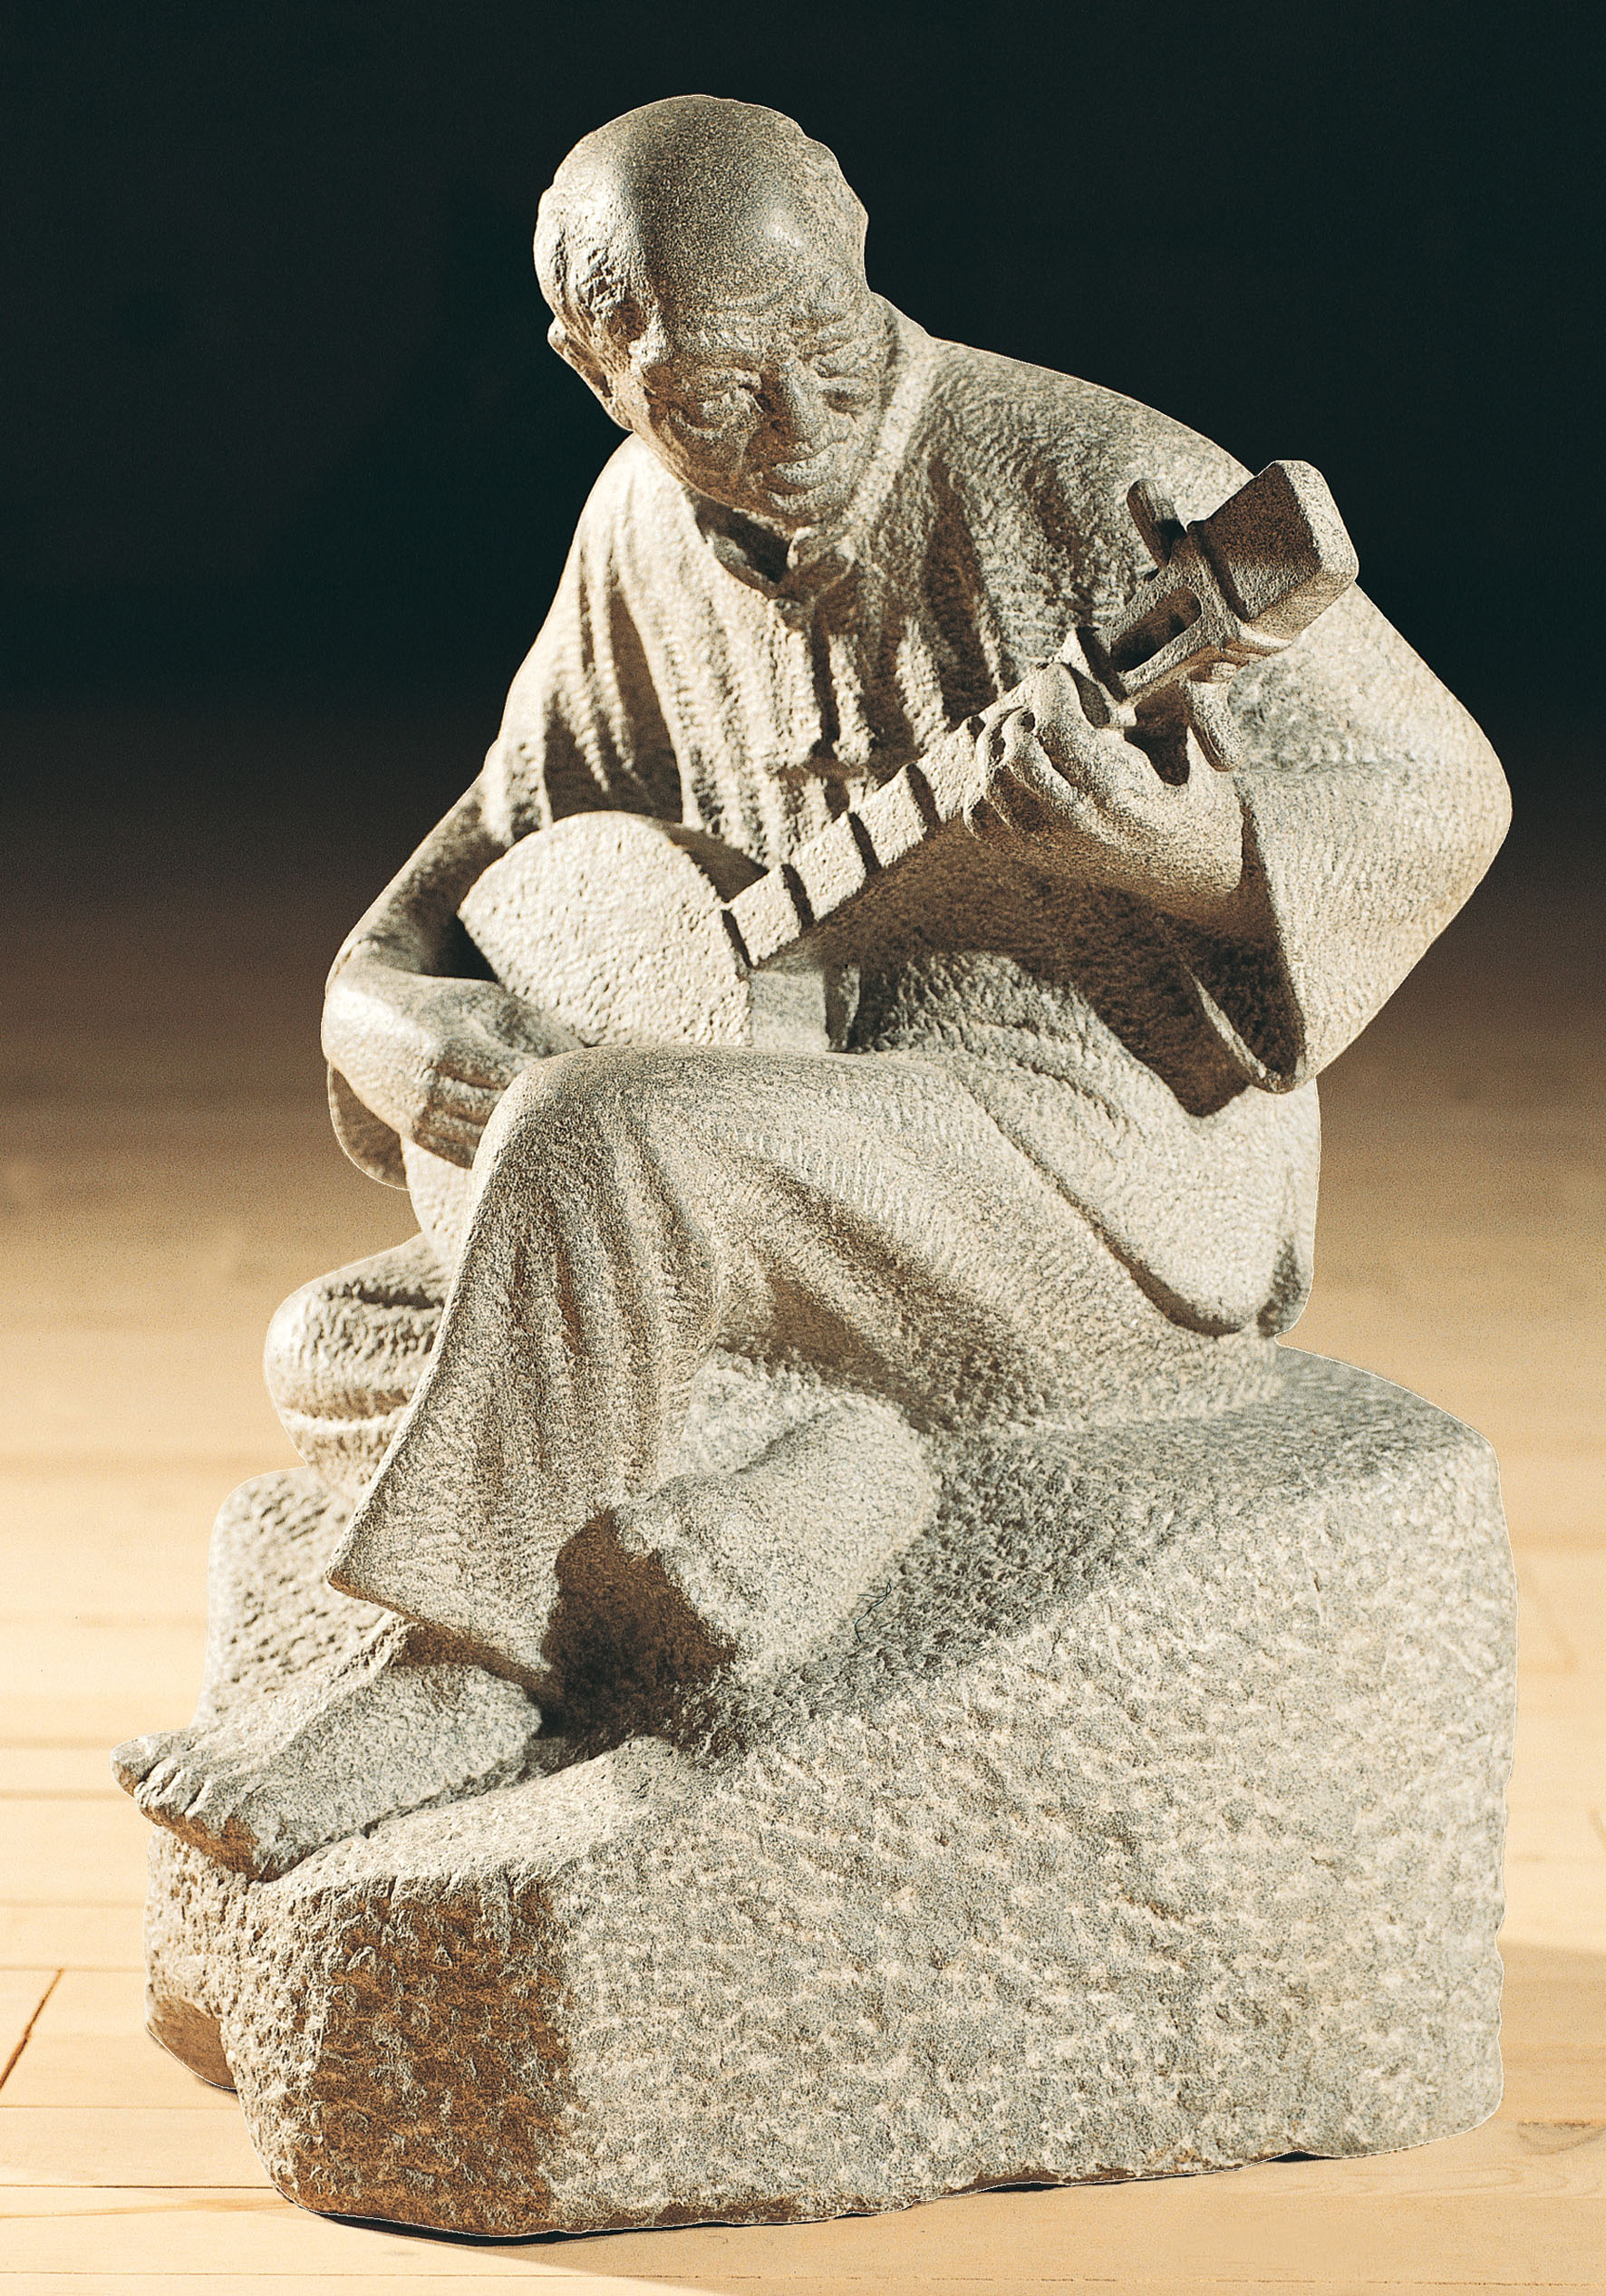 The Old Man and His Four-stringed Musical Instrument The piece by Wang Hsiu-chi has a peaceful disposition and natural beauty.